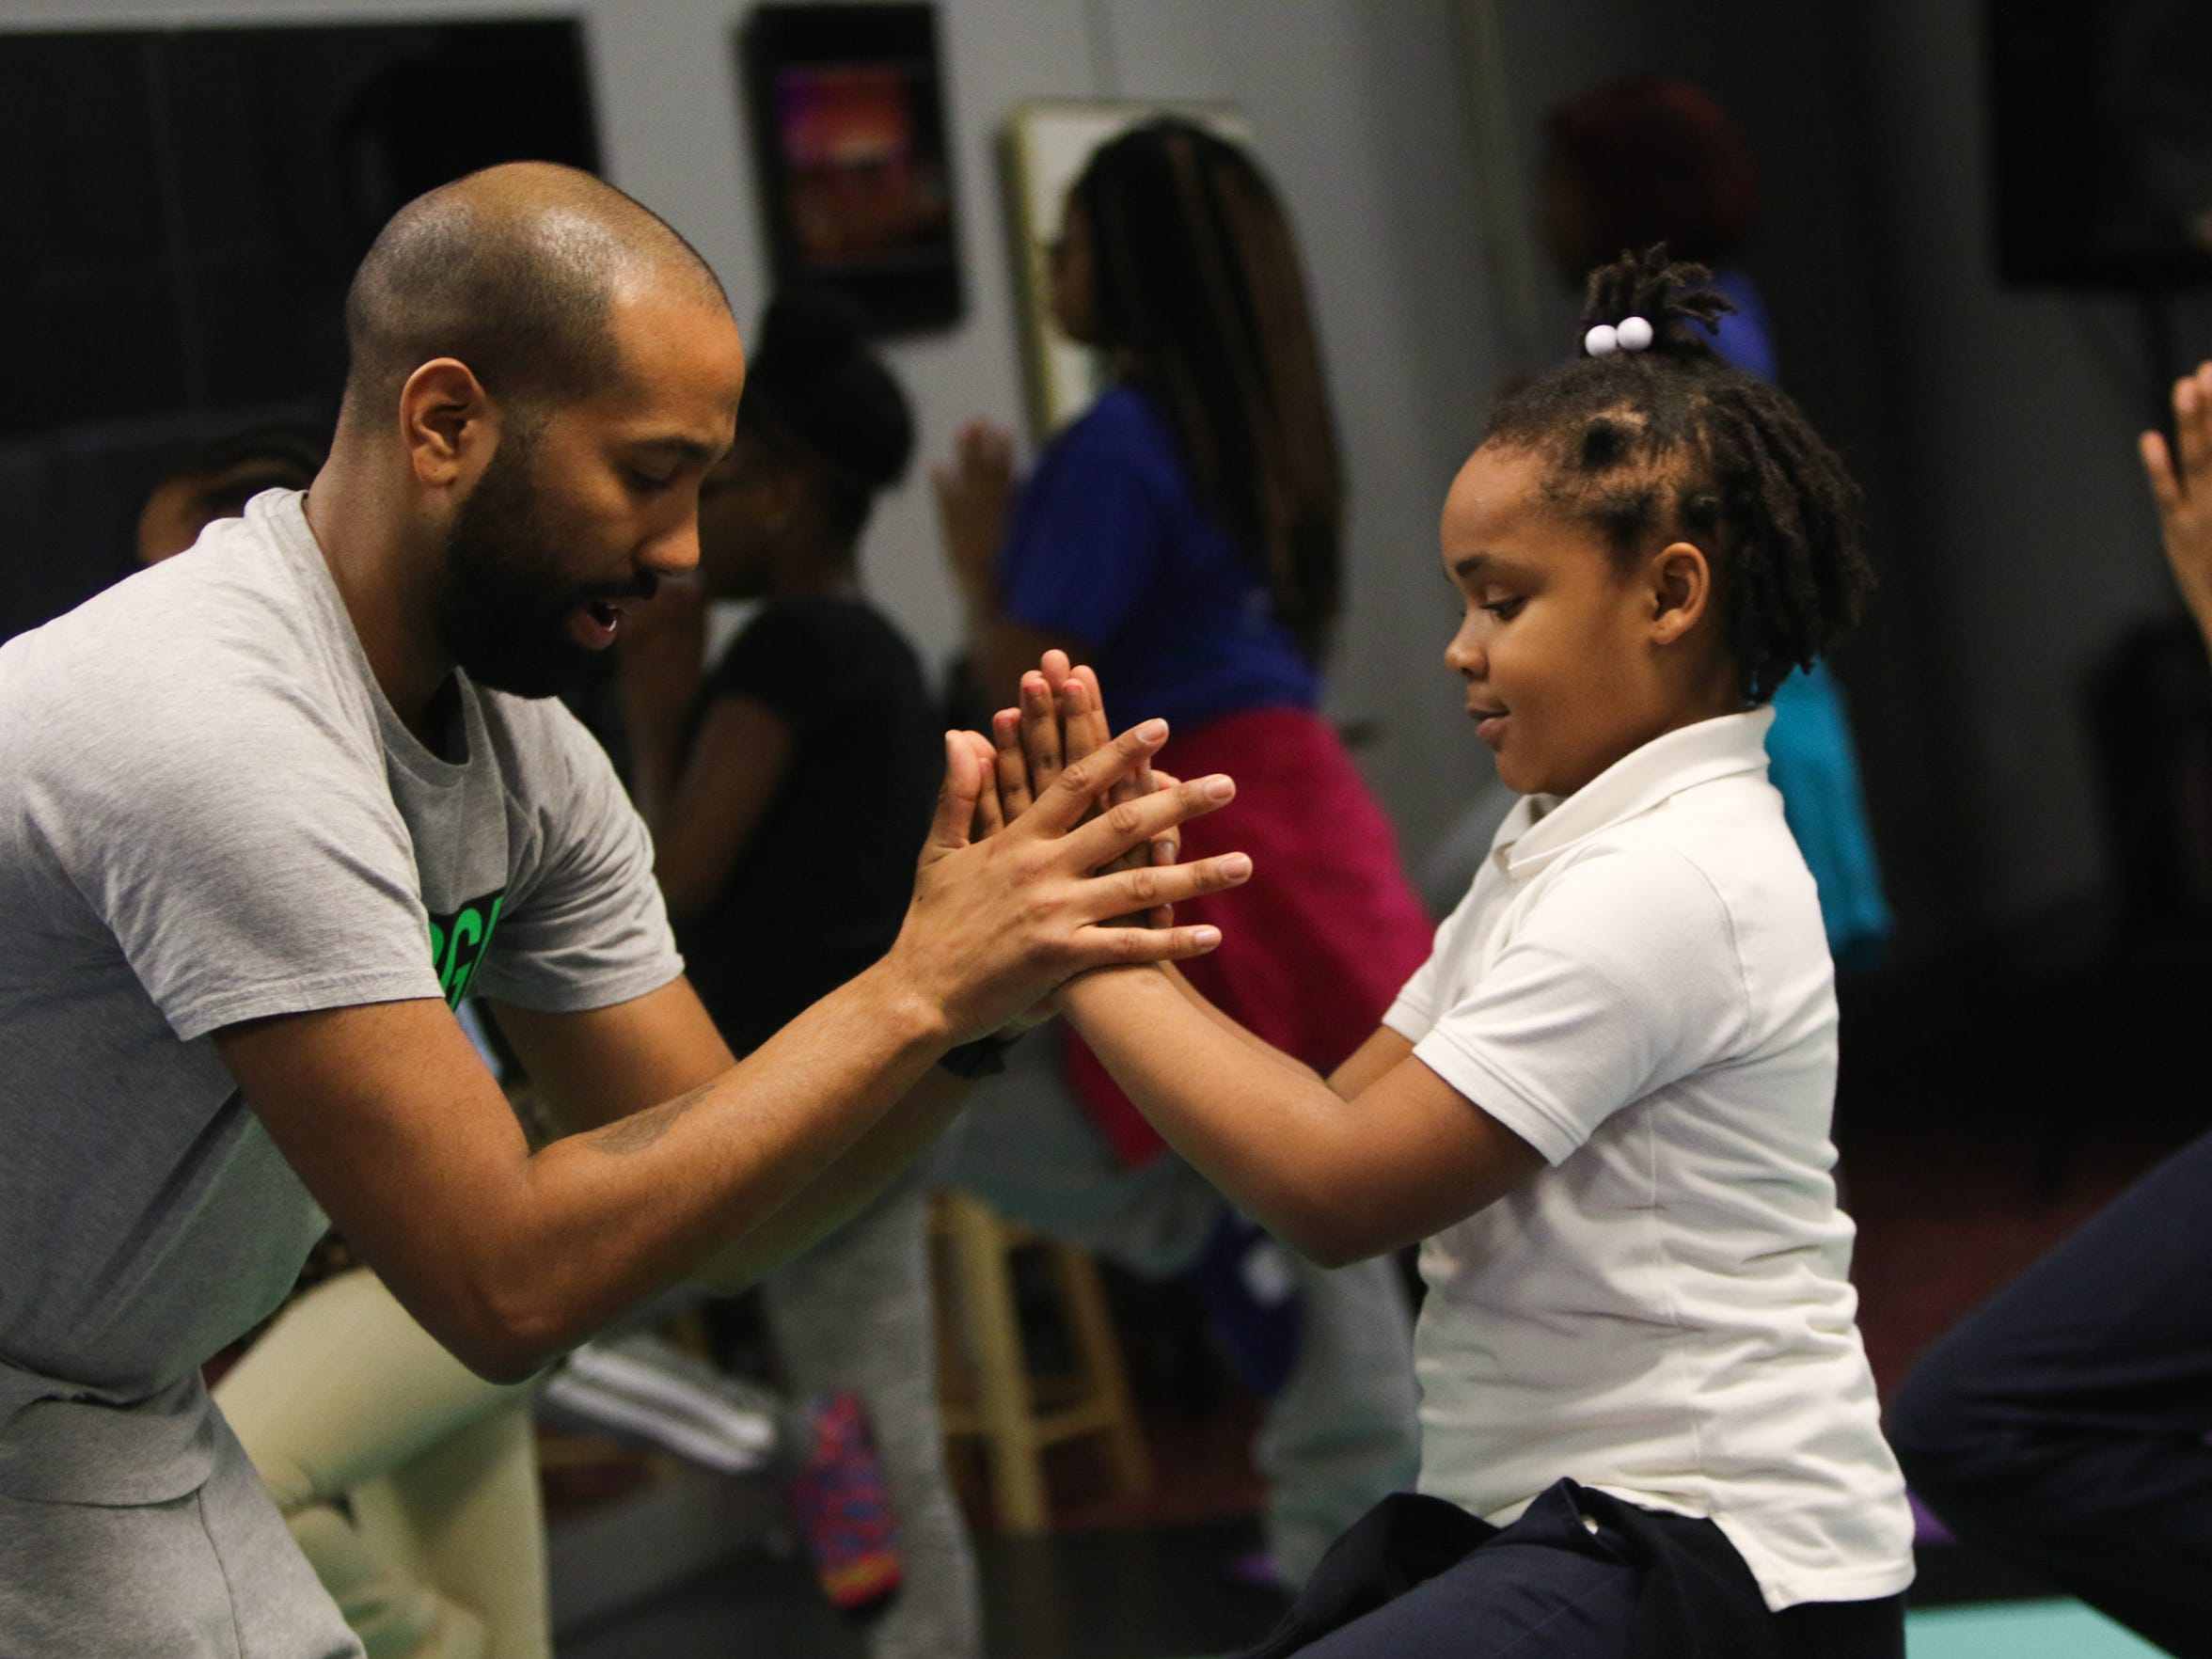 Yoga instructor Jason Aviles helps steady NyAsiah Coleman as she attempts a tree pose during yoga class at Christina Cultural Art Center's HeArt Under the Hoodie Youth Violence Prevention Program Thursday.